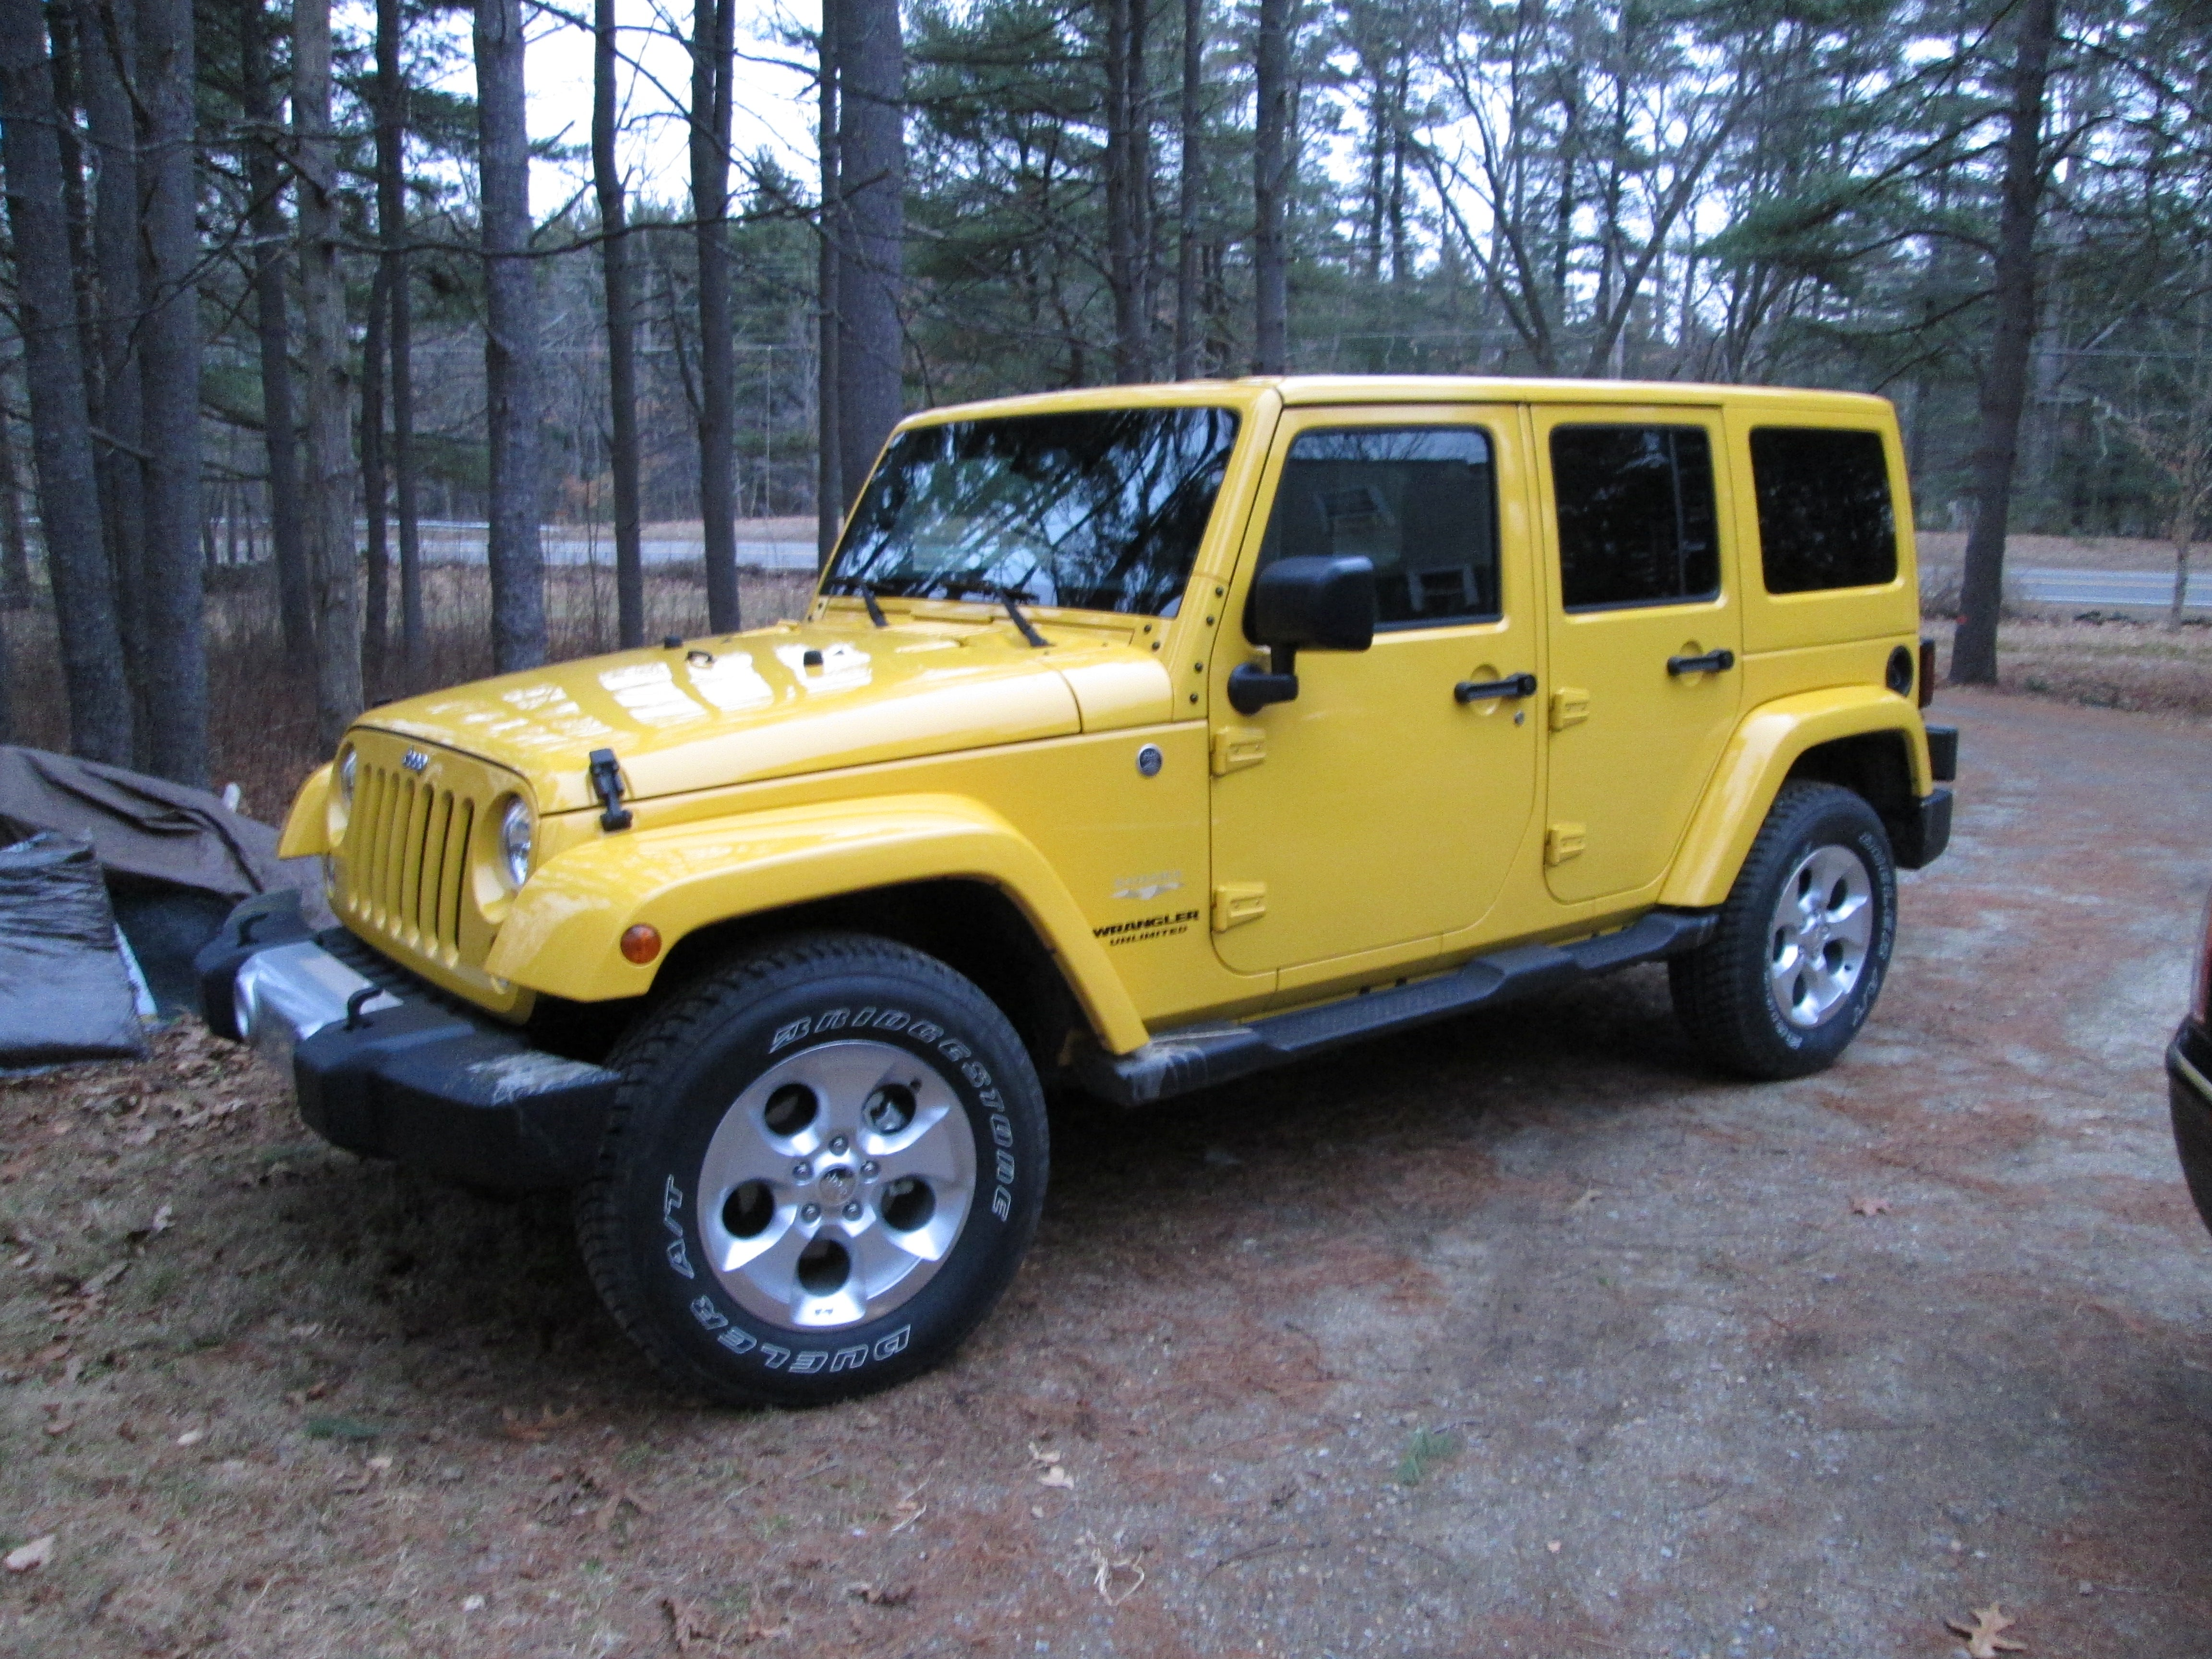 Jeep Wrangler s Sahara Takes You f Road in Style